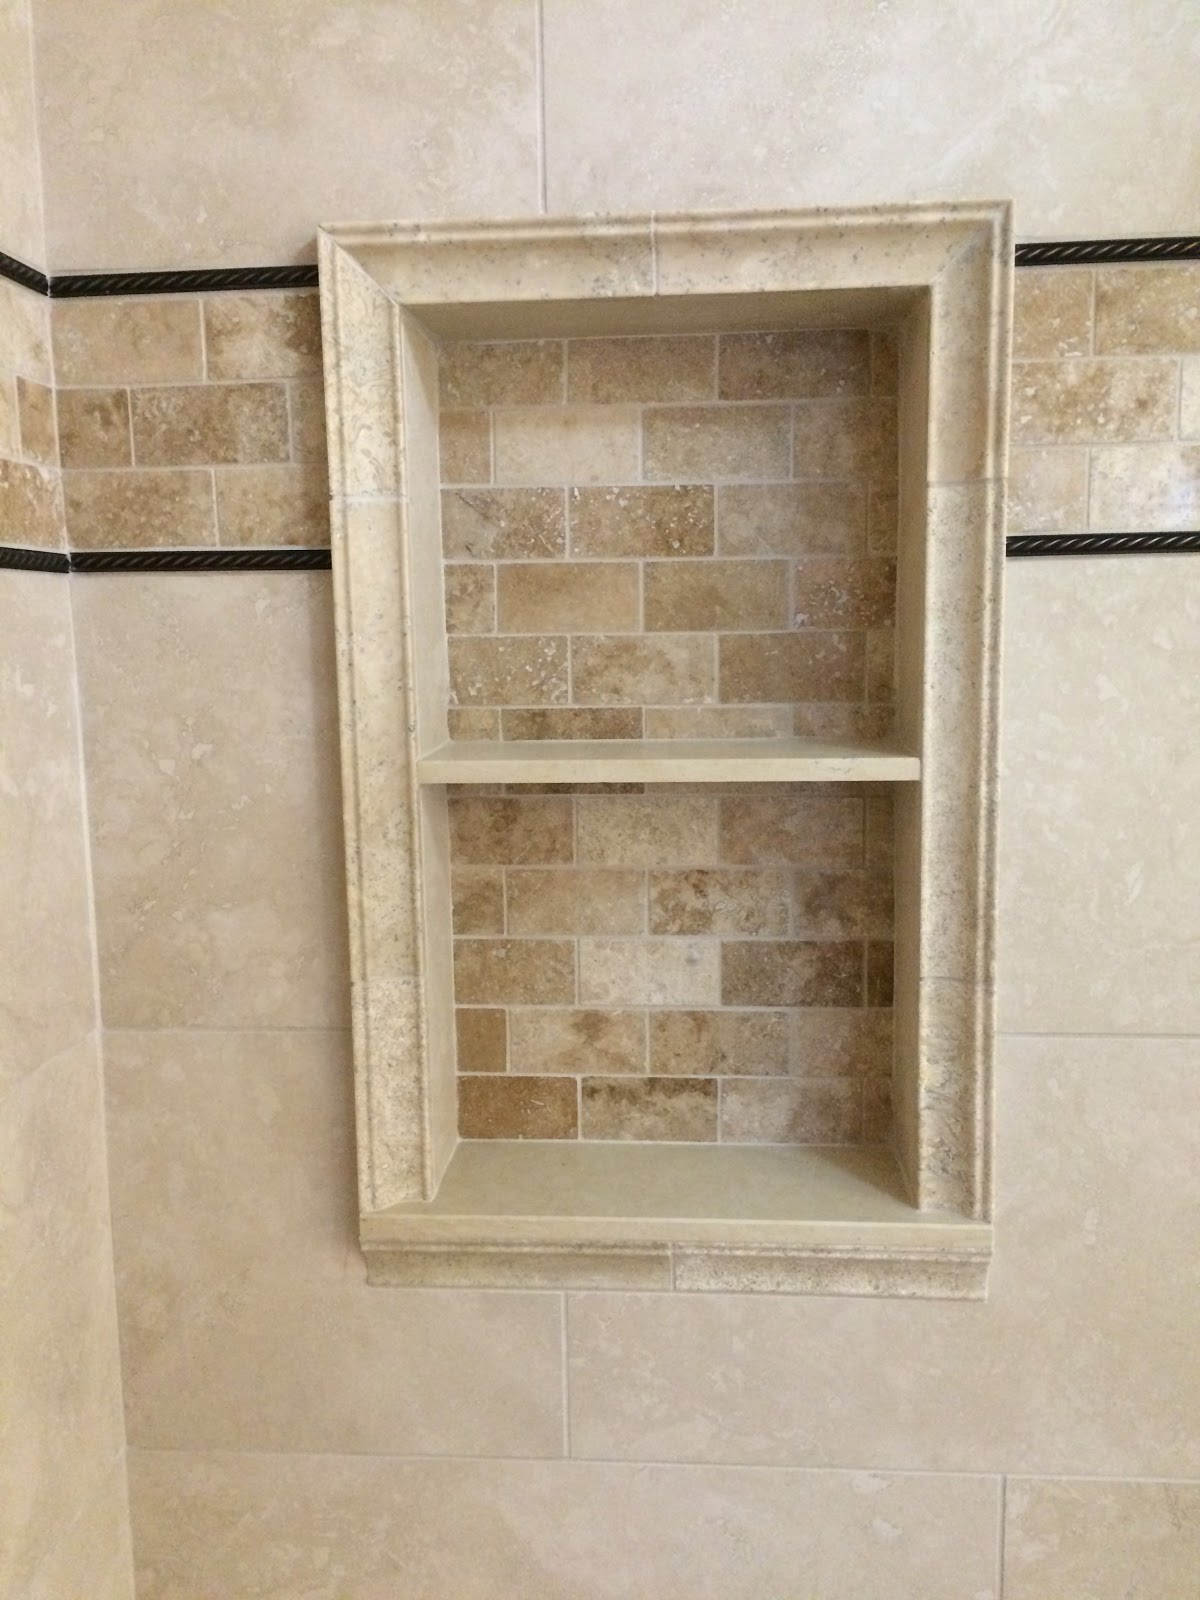 Decorative Mosaic Tile Inlay With Oil Rubbed Bronze Fixtures Recessed Niche Panna Beige Shelves Capital Travertine Trim